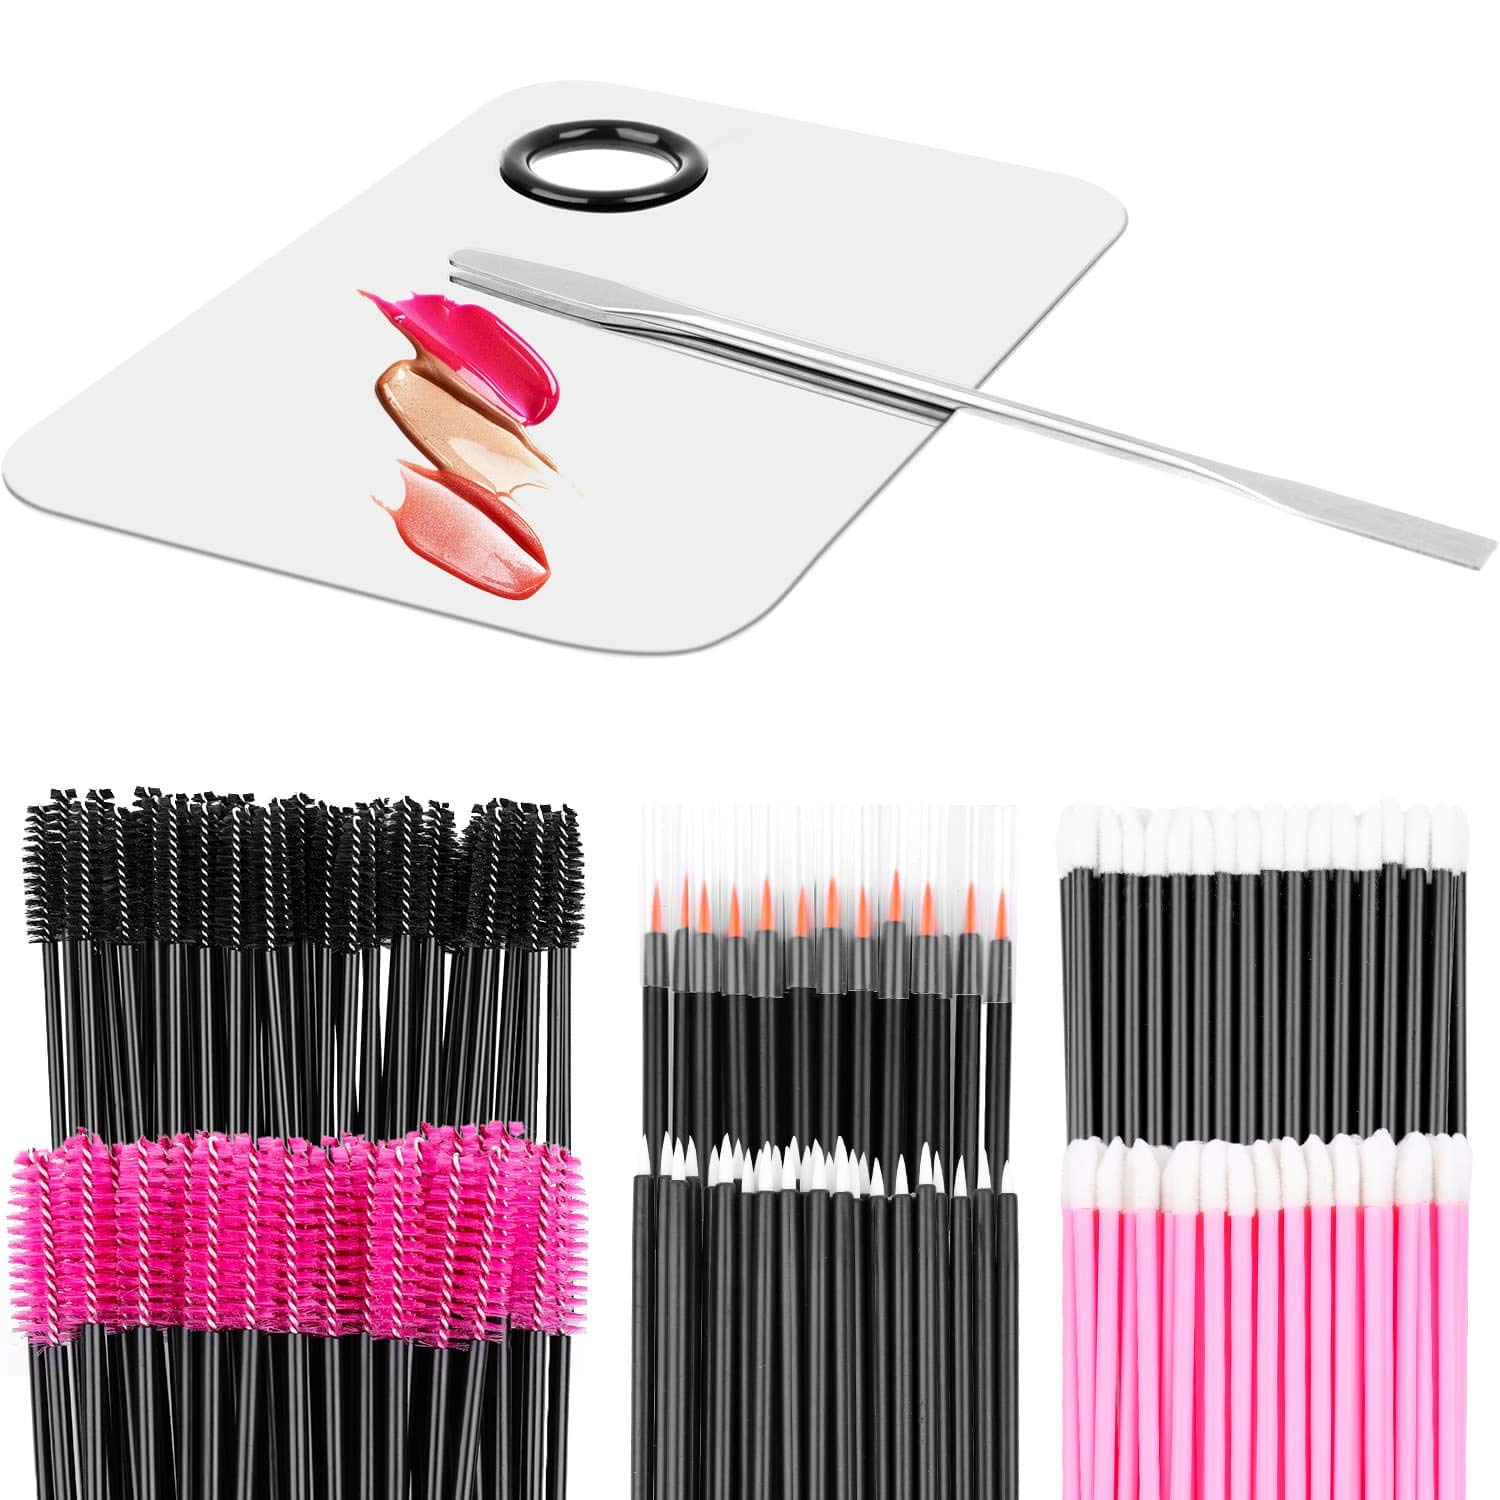 Makeup Mixing Palette with Spatula and 250PCS Disposable Makeup Applicators Tools Kit (Disposable Mascara Wands, Lipstick Applicators, Eyeliner Brushes)